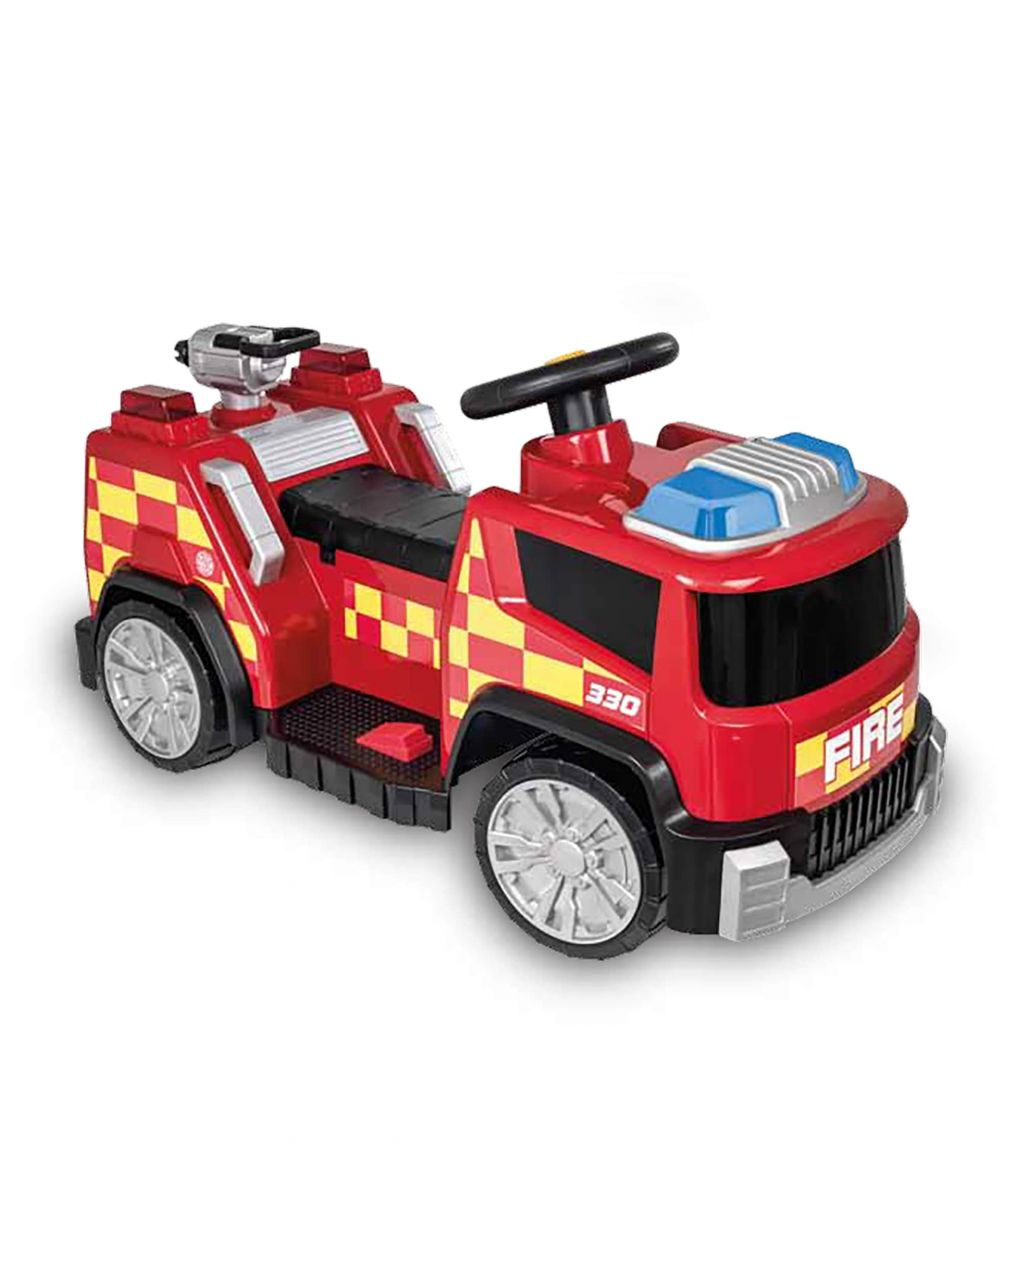 Sun&sport - cavalcabile fire engine - Sun&Sport